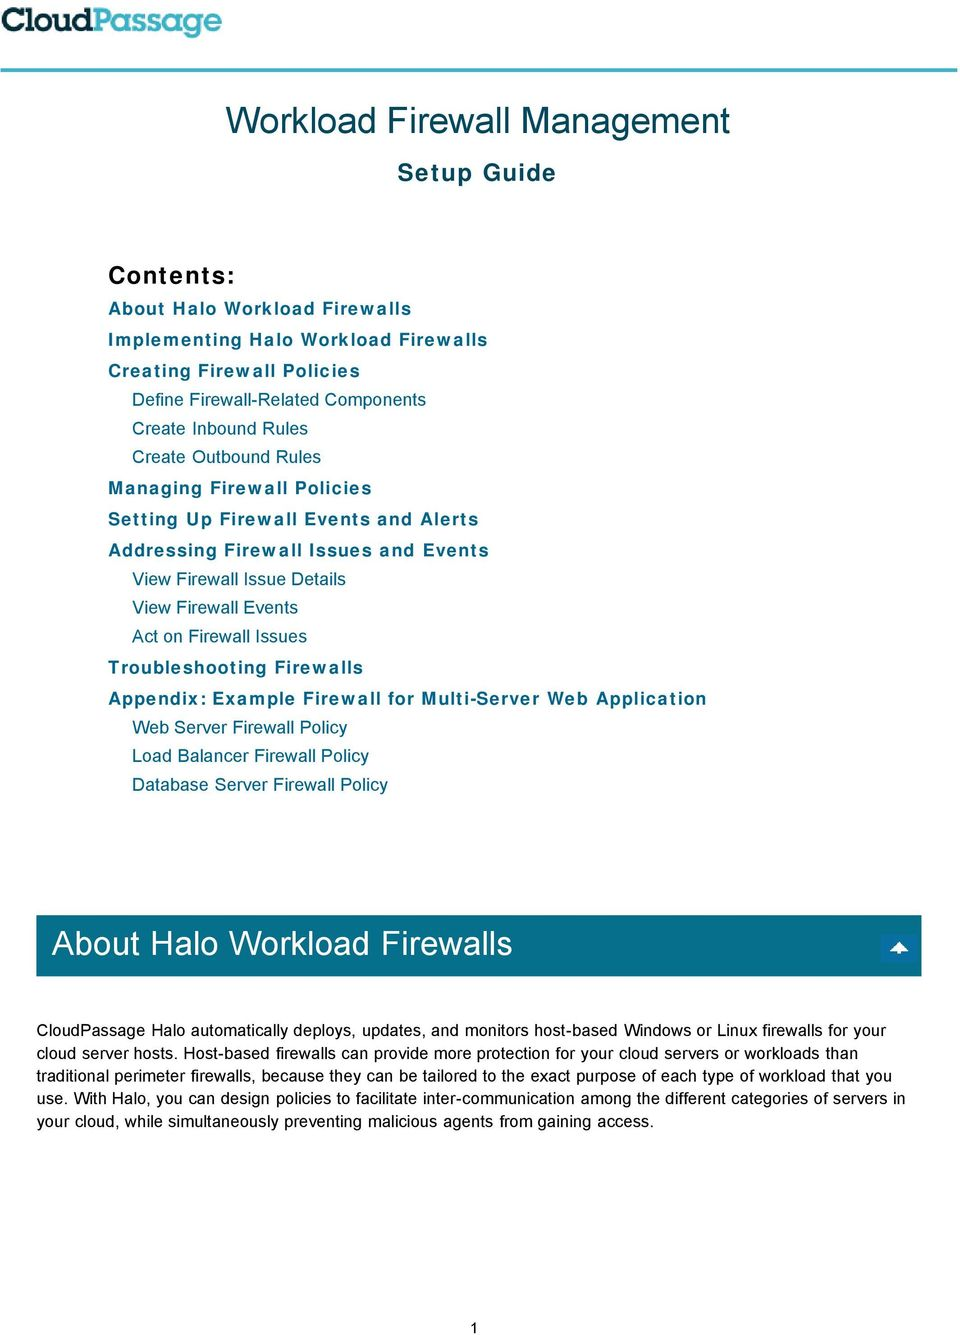 Issues Troubleshooting Firewalls Appendix: Example Firewall for Multi-Server Web Application Web Server Firewall Policy Load Balancer Firewall Policy Database Server Firewall Policy About Halo